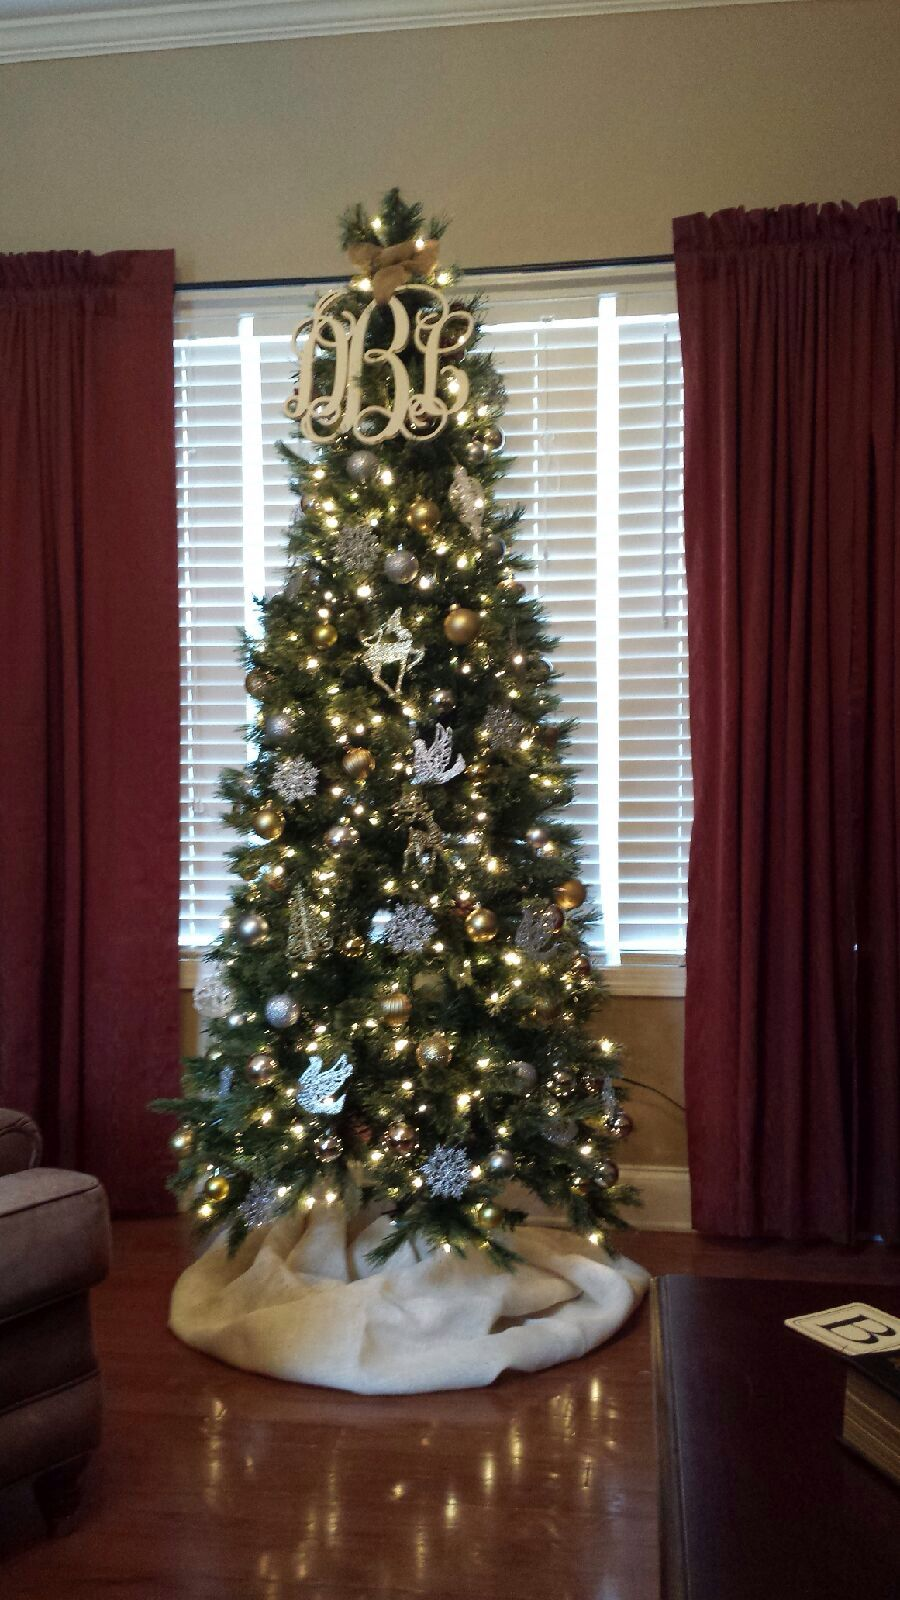 Silver and gold Christmas tree with monogrammed topper and